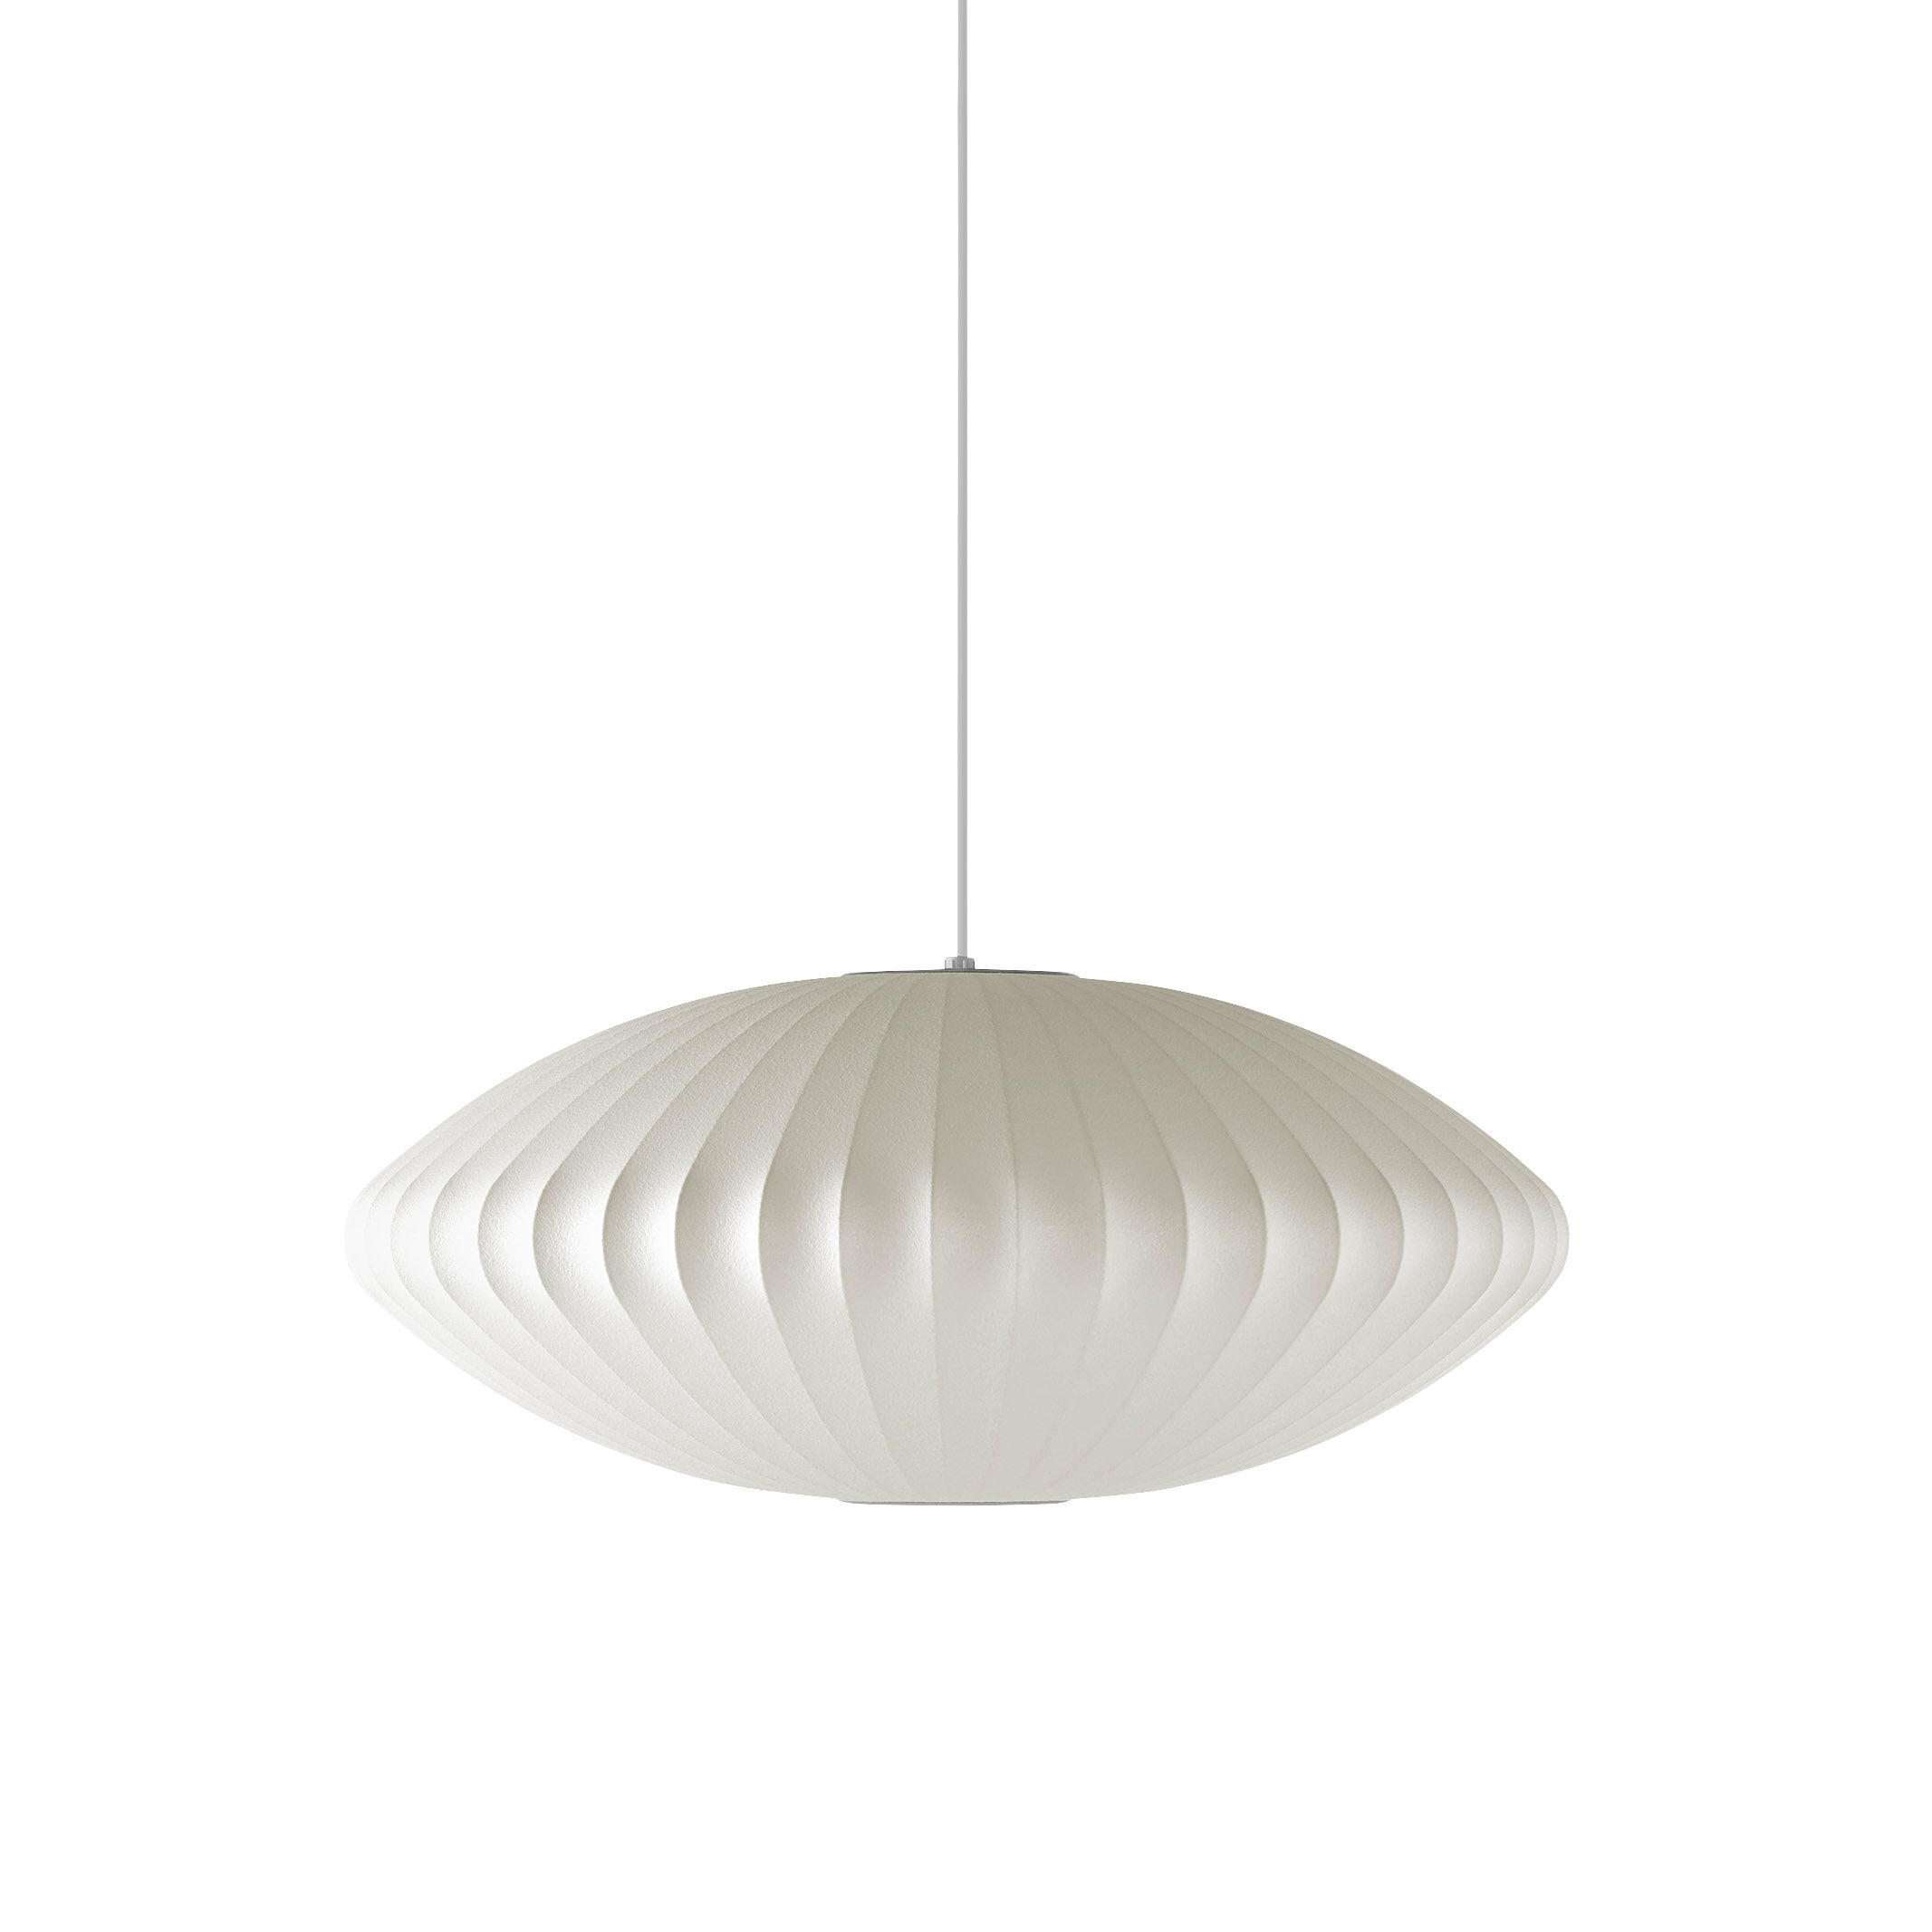 George Nelson Bubble Lampu0026reg; Saucer Pendant In Color